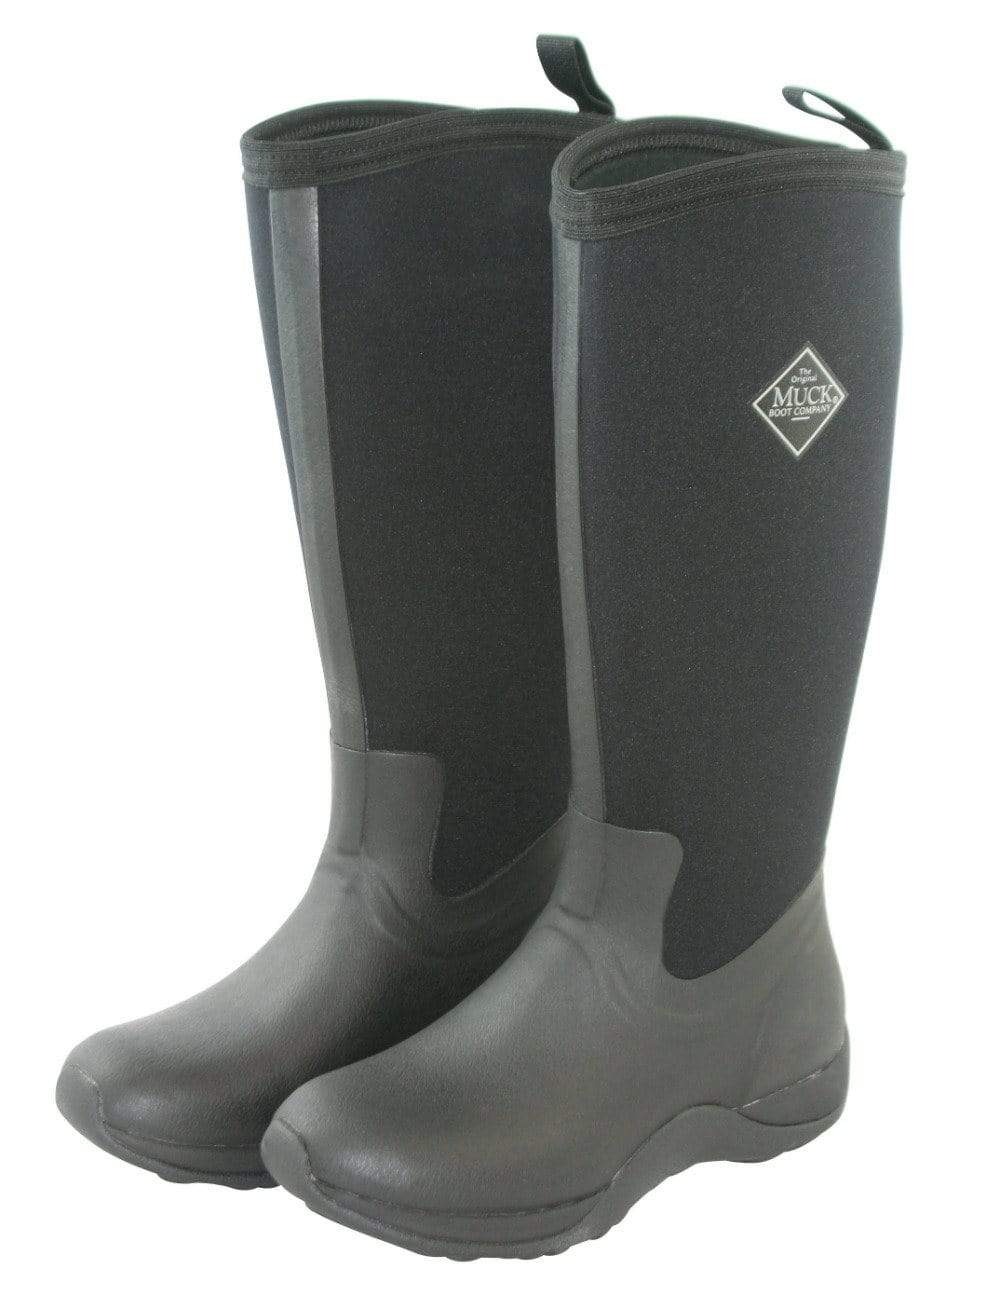 Black Neoprene Arctic Adventure Waterproof Boots by Muck Boot - Wide Calf Wellies for Women